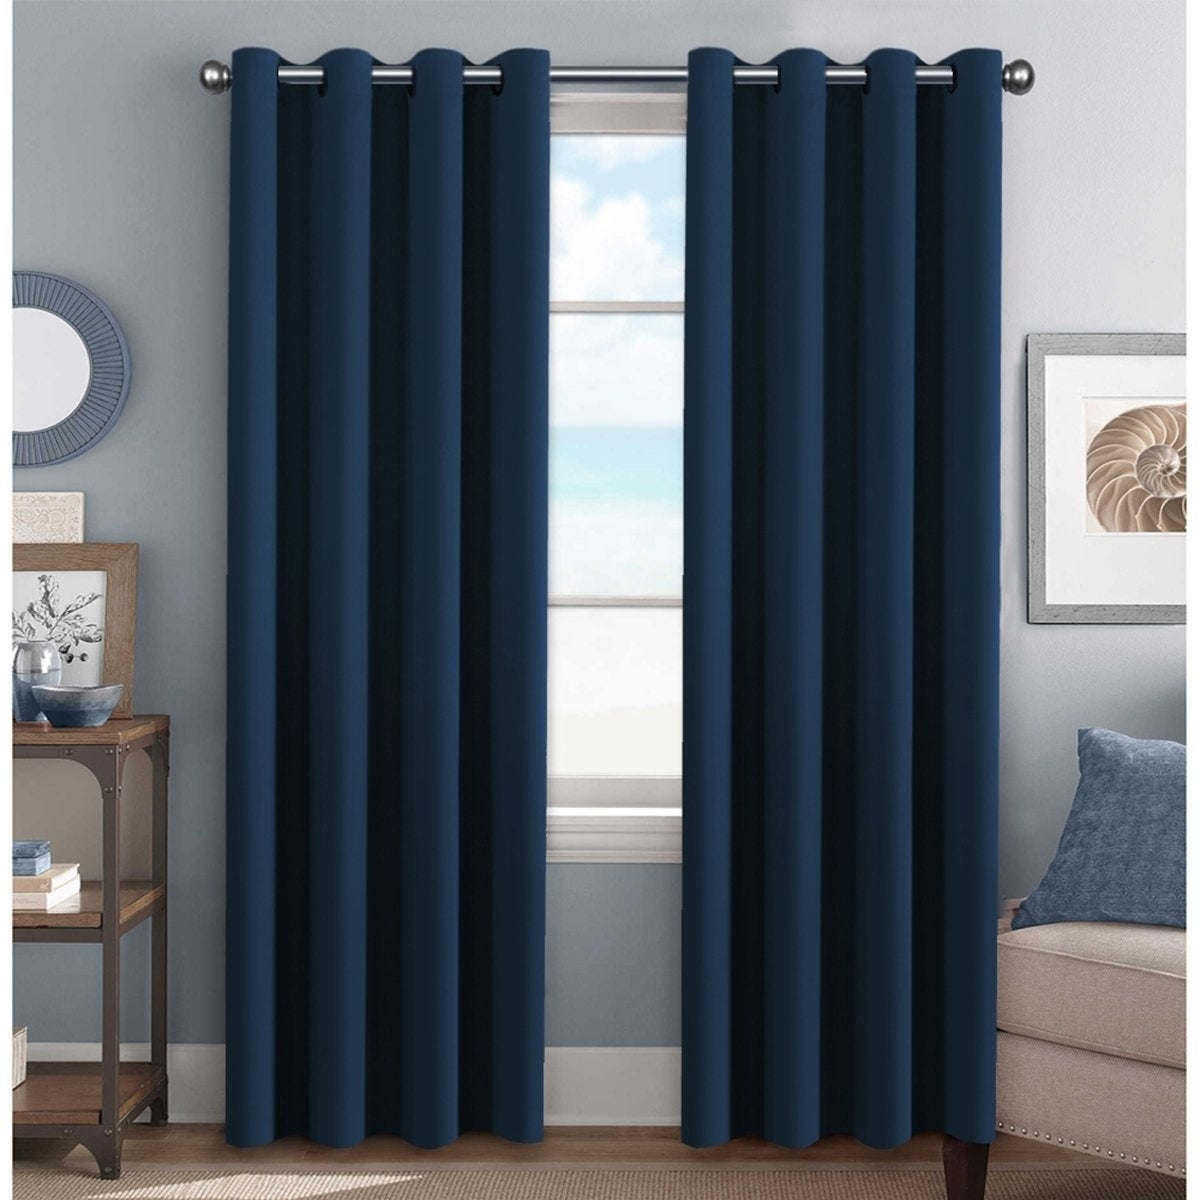 Primebeau Blackout Thermal Insulated Grommet Top Solid Curtain Panel Pair On Sale Overstock 20360802